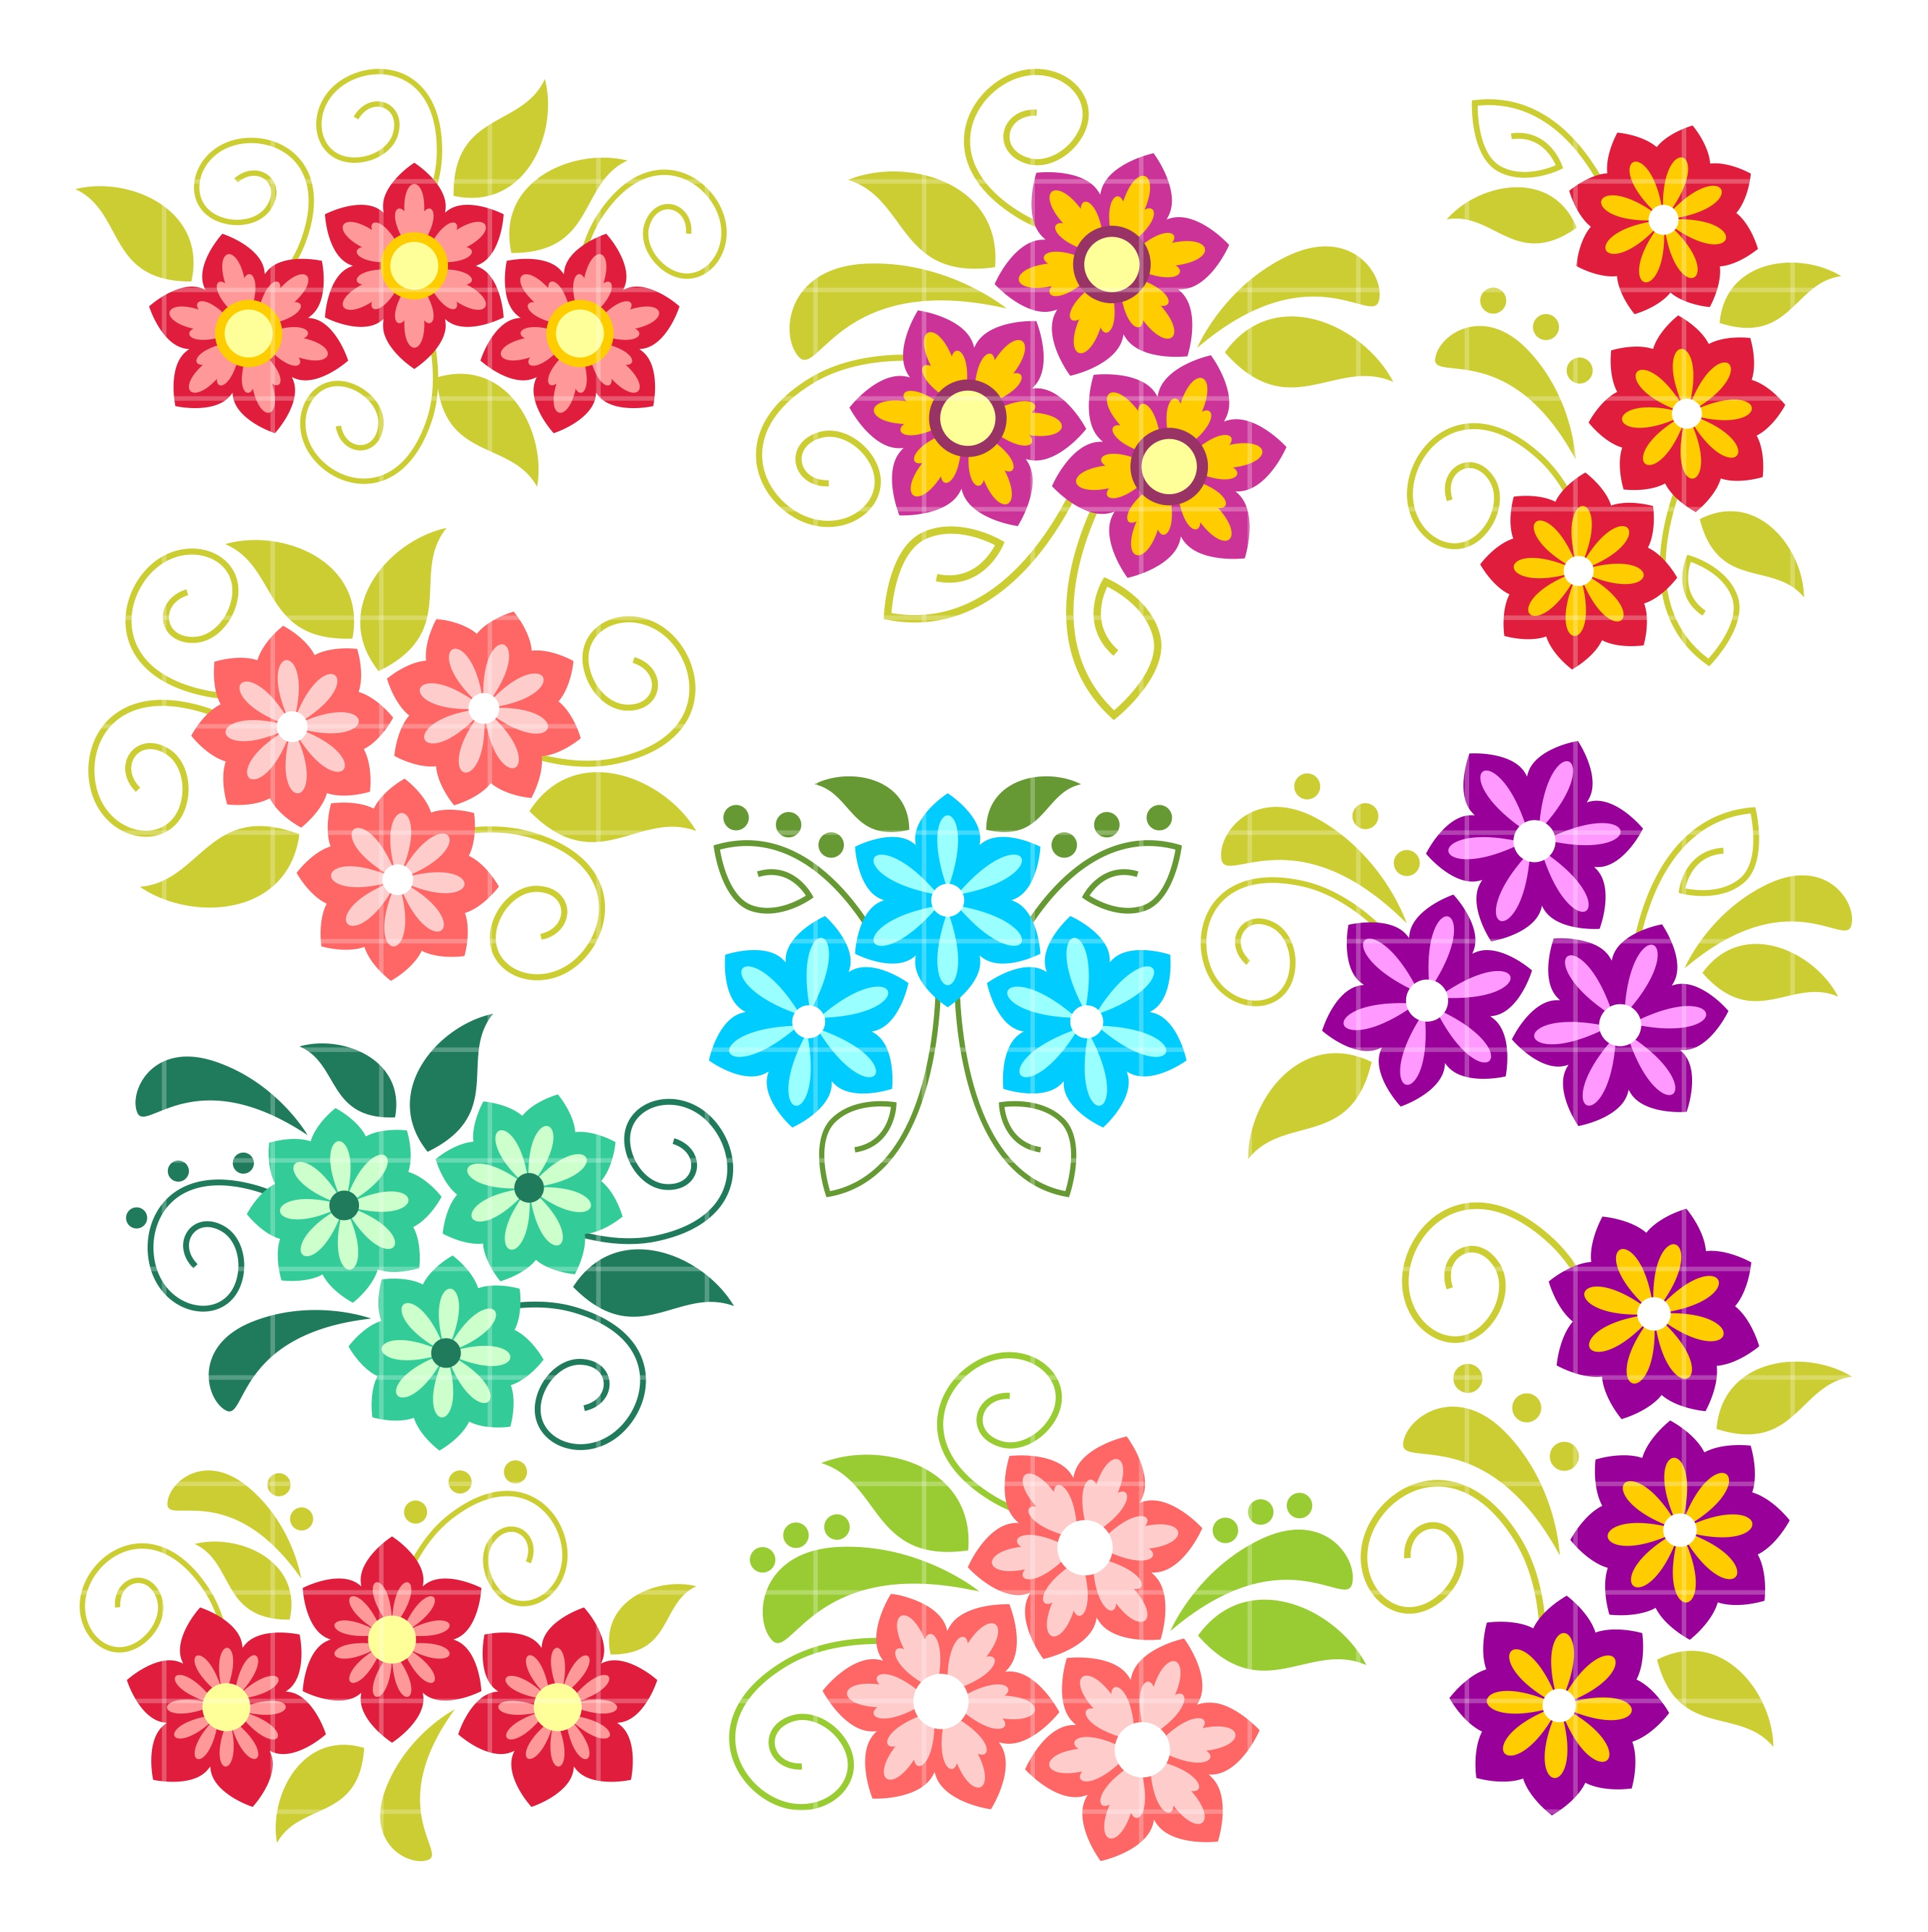 Semi Exclusive Art For Embroidery Digitizing Crafting And More